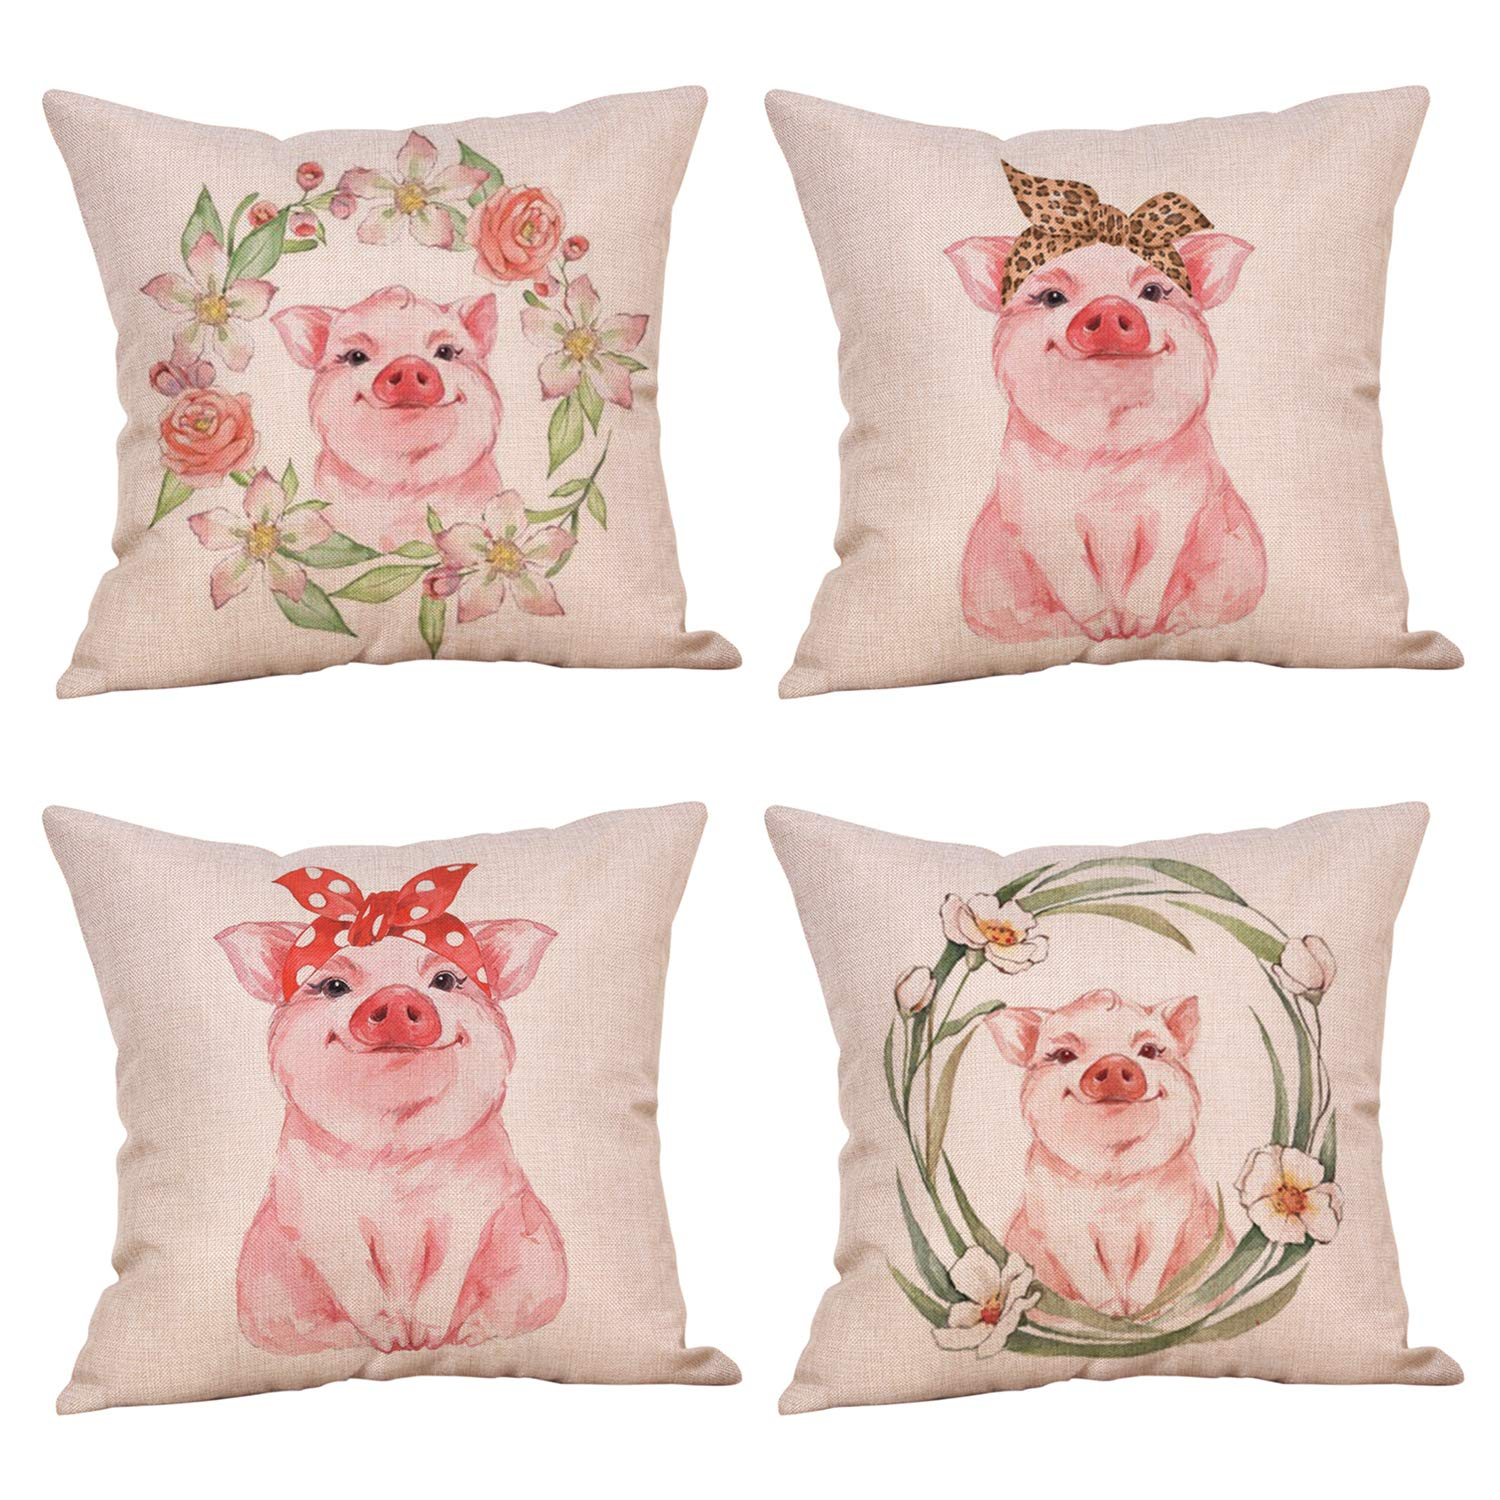 MeritChoice Pig Pillow Cute Pink Pig Pillow Case Cover Set of 4 Cotton Linen 18x18 Inch